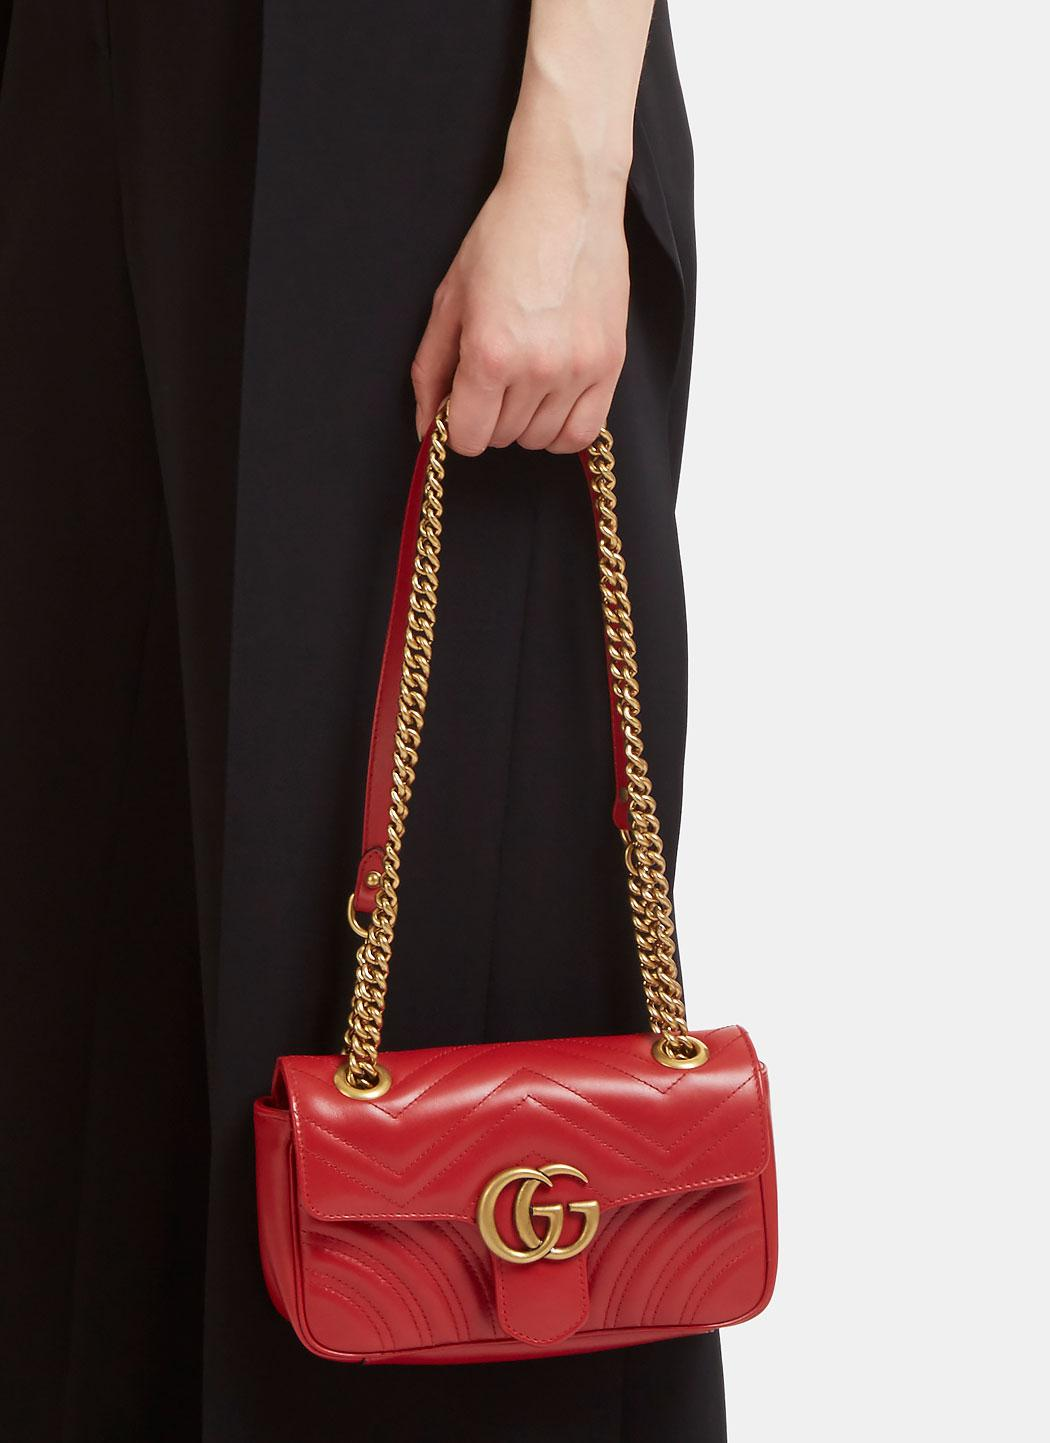 b8029b4d2ab3 Gucci Gg Marmont Matelassé Mini Chain Shoulder Bag In Red in Red - Lyst